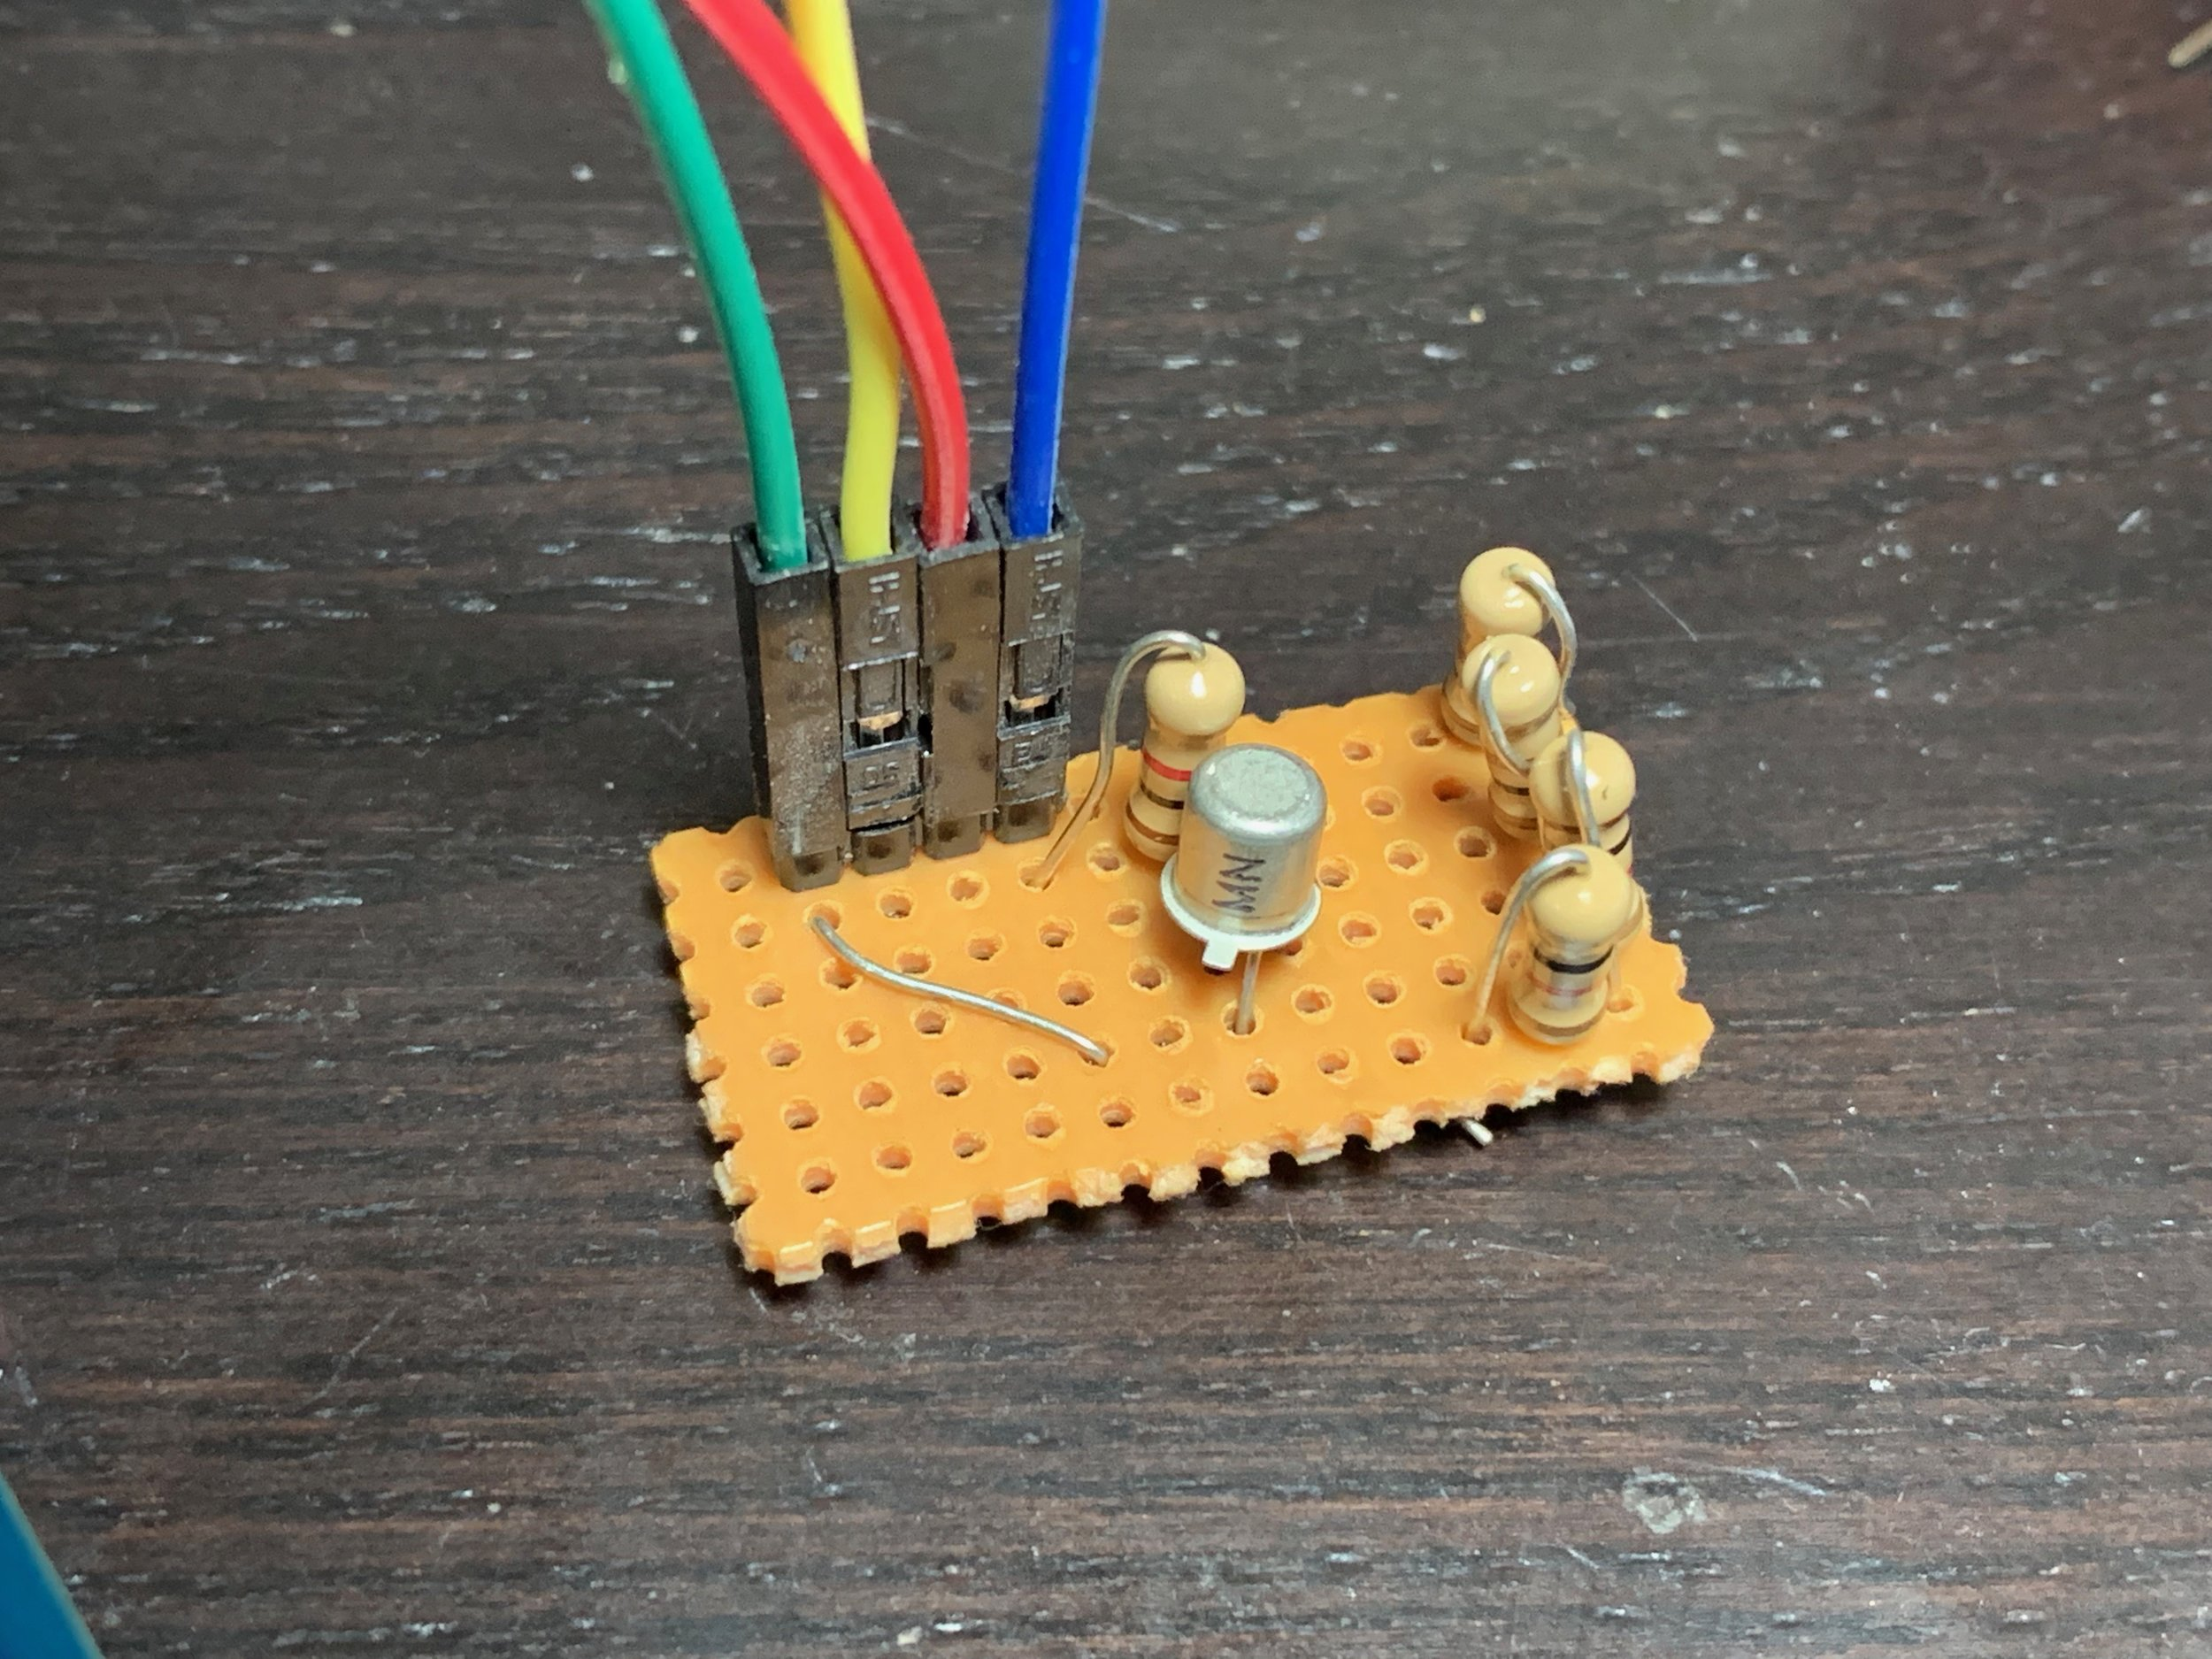 My going high transistor board. The four restores along replace the single 2200 ohm resistor I didn't have. The other resistor is a pull down, and the jumper wires lead to the MegaSquirt.